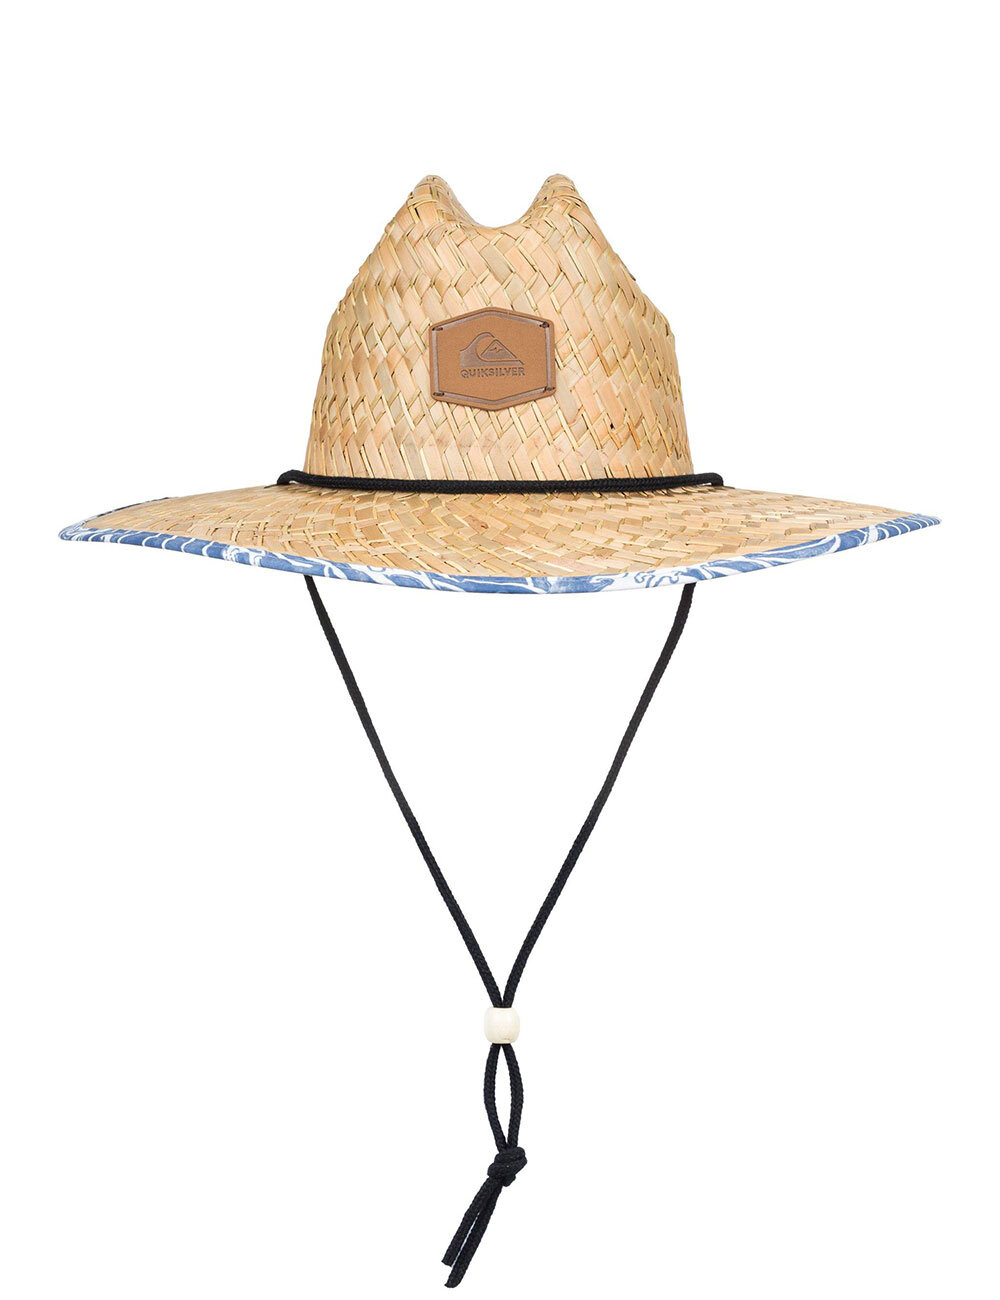 b6ff034e52b Outsider straw hat men accessories surf skate brands jpg 1000x1300  Quiksilver straw hat